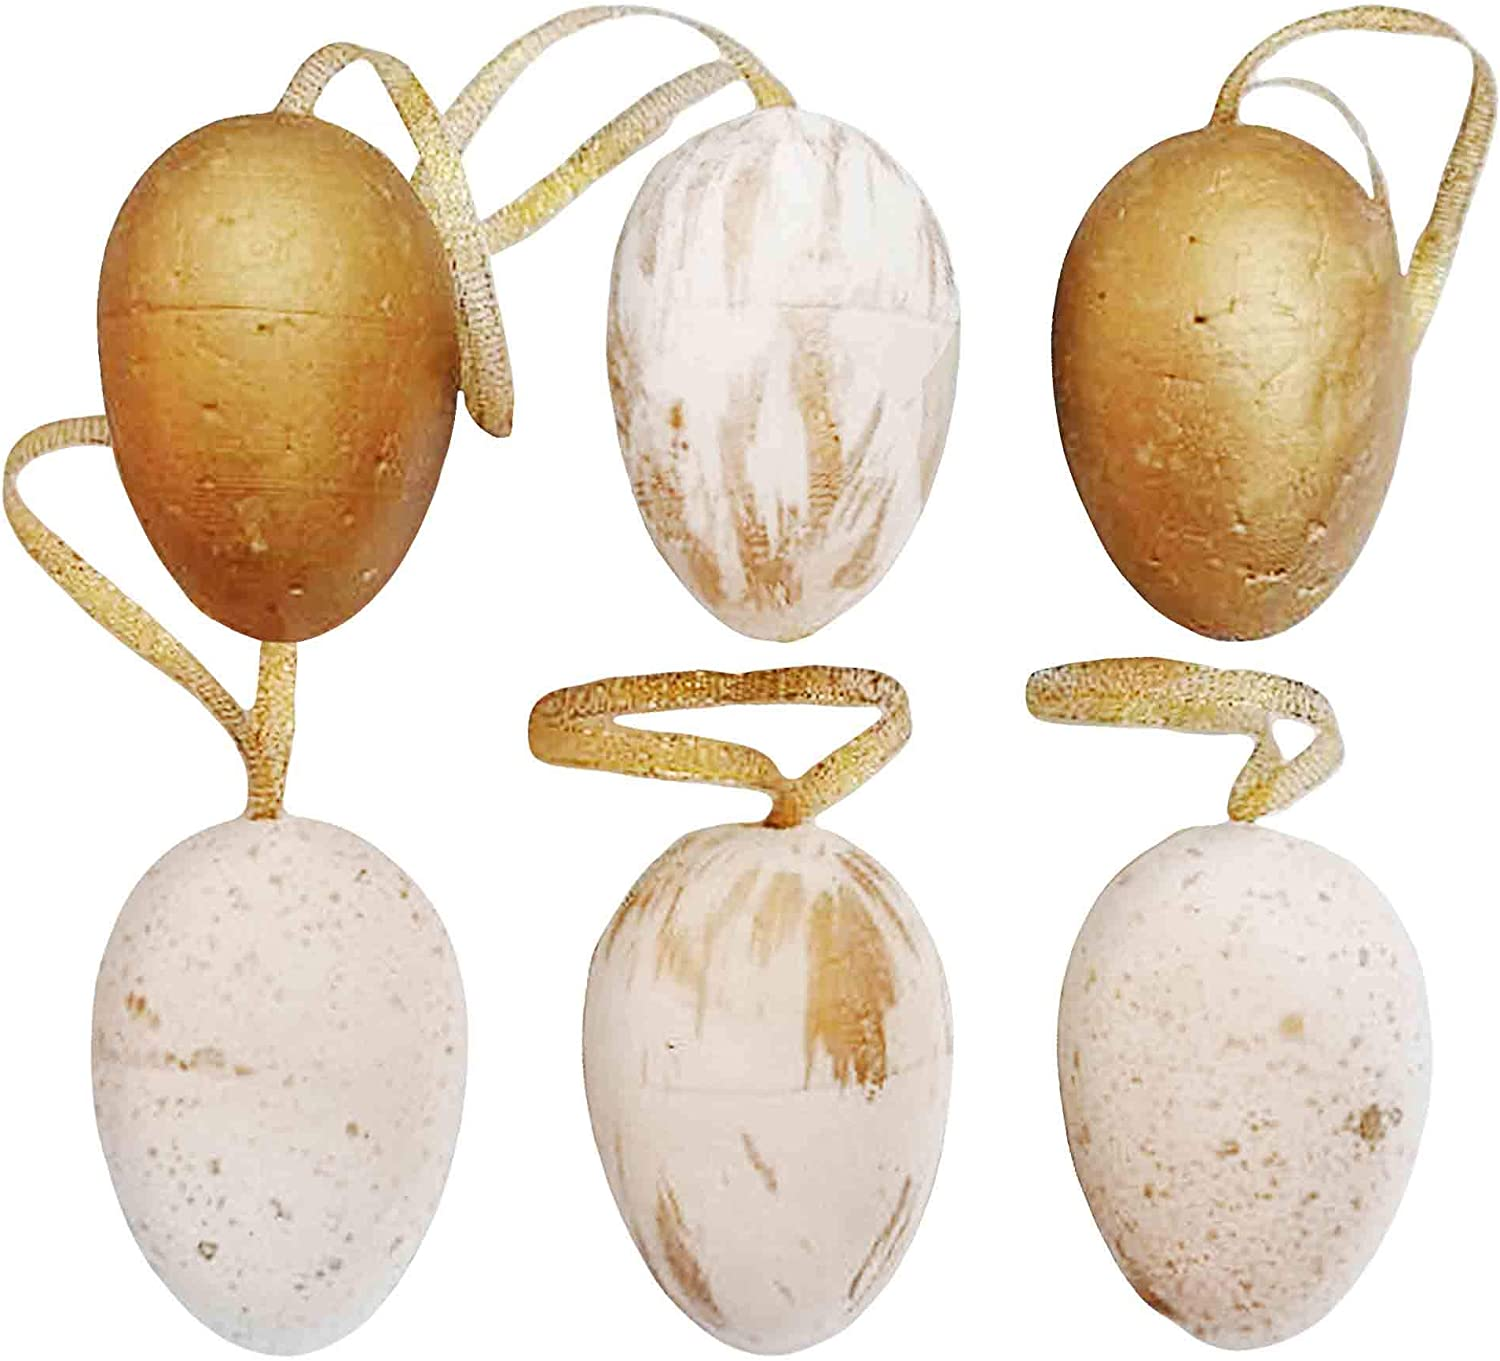 Easter Ornaments for Tree 6 pcs - Gold and White Foil Easter Hanging Ornament for Easter Decor